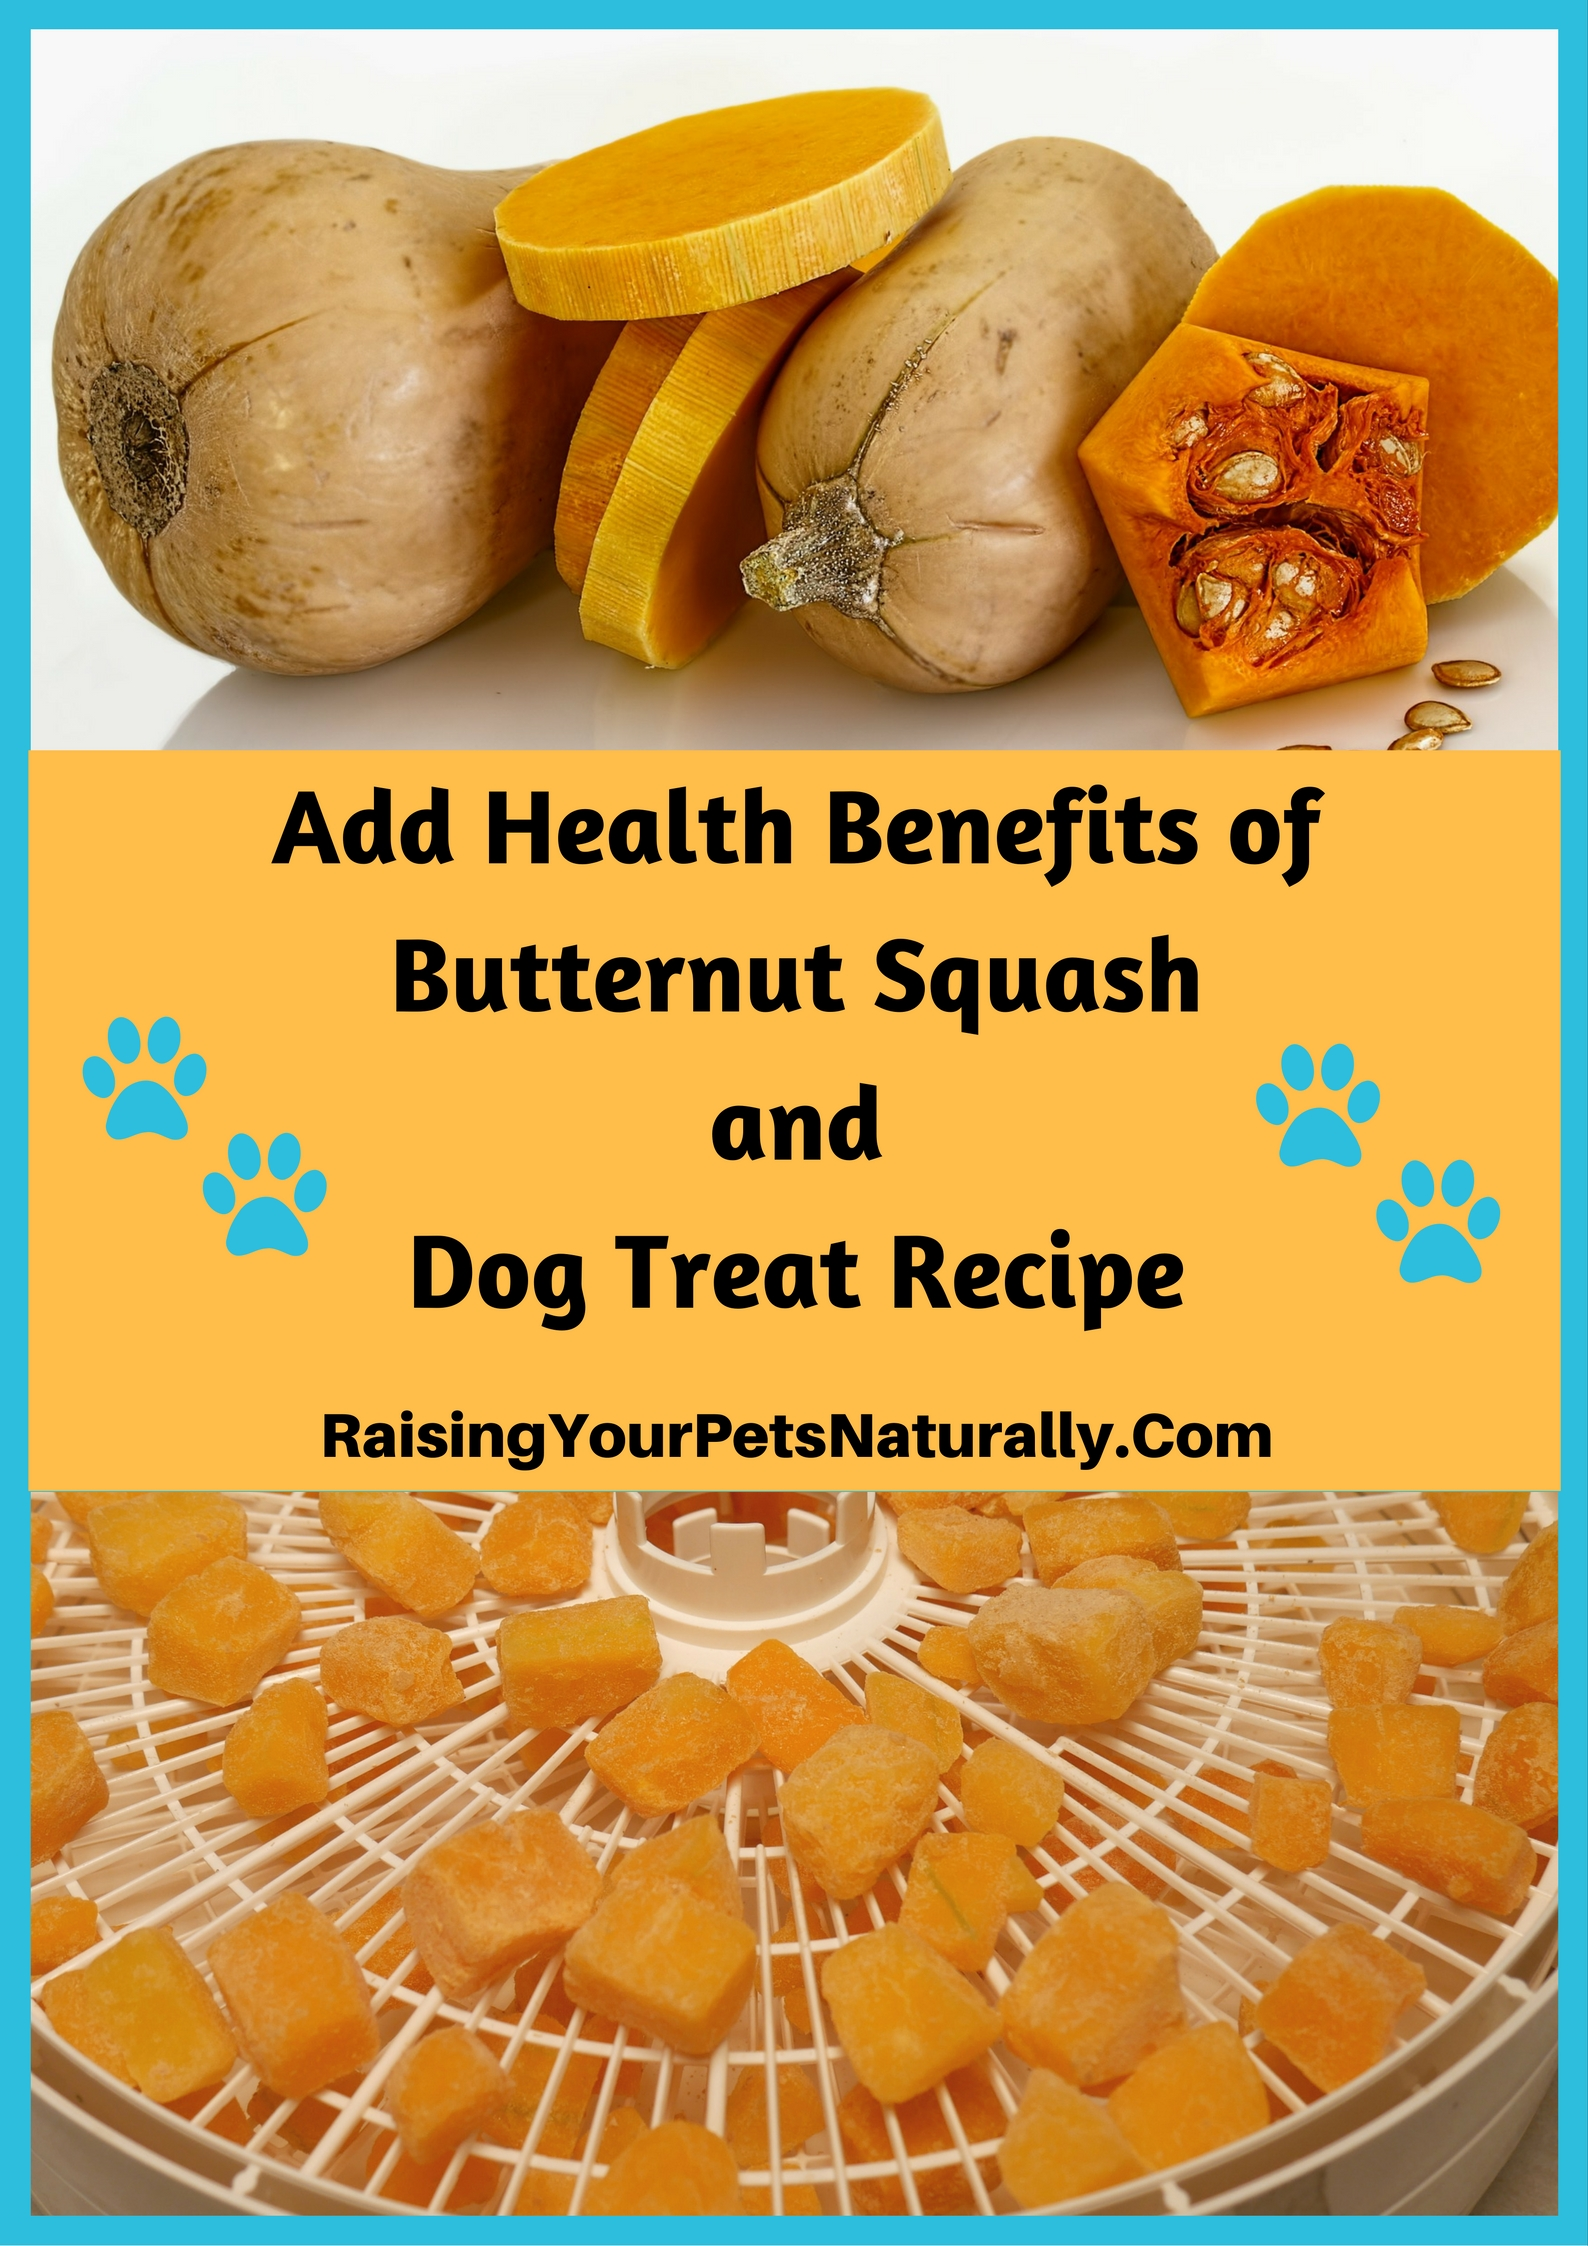 Learn the health benefits of butternut squash for dogs, cats and people. A healthy dog treat recipe is in the article as a bonus! Visit www.raisingyourpetsnaturally.com and search squash.